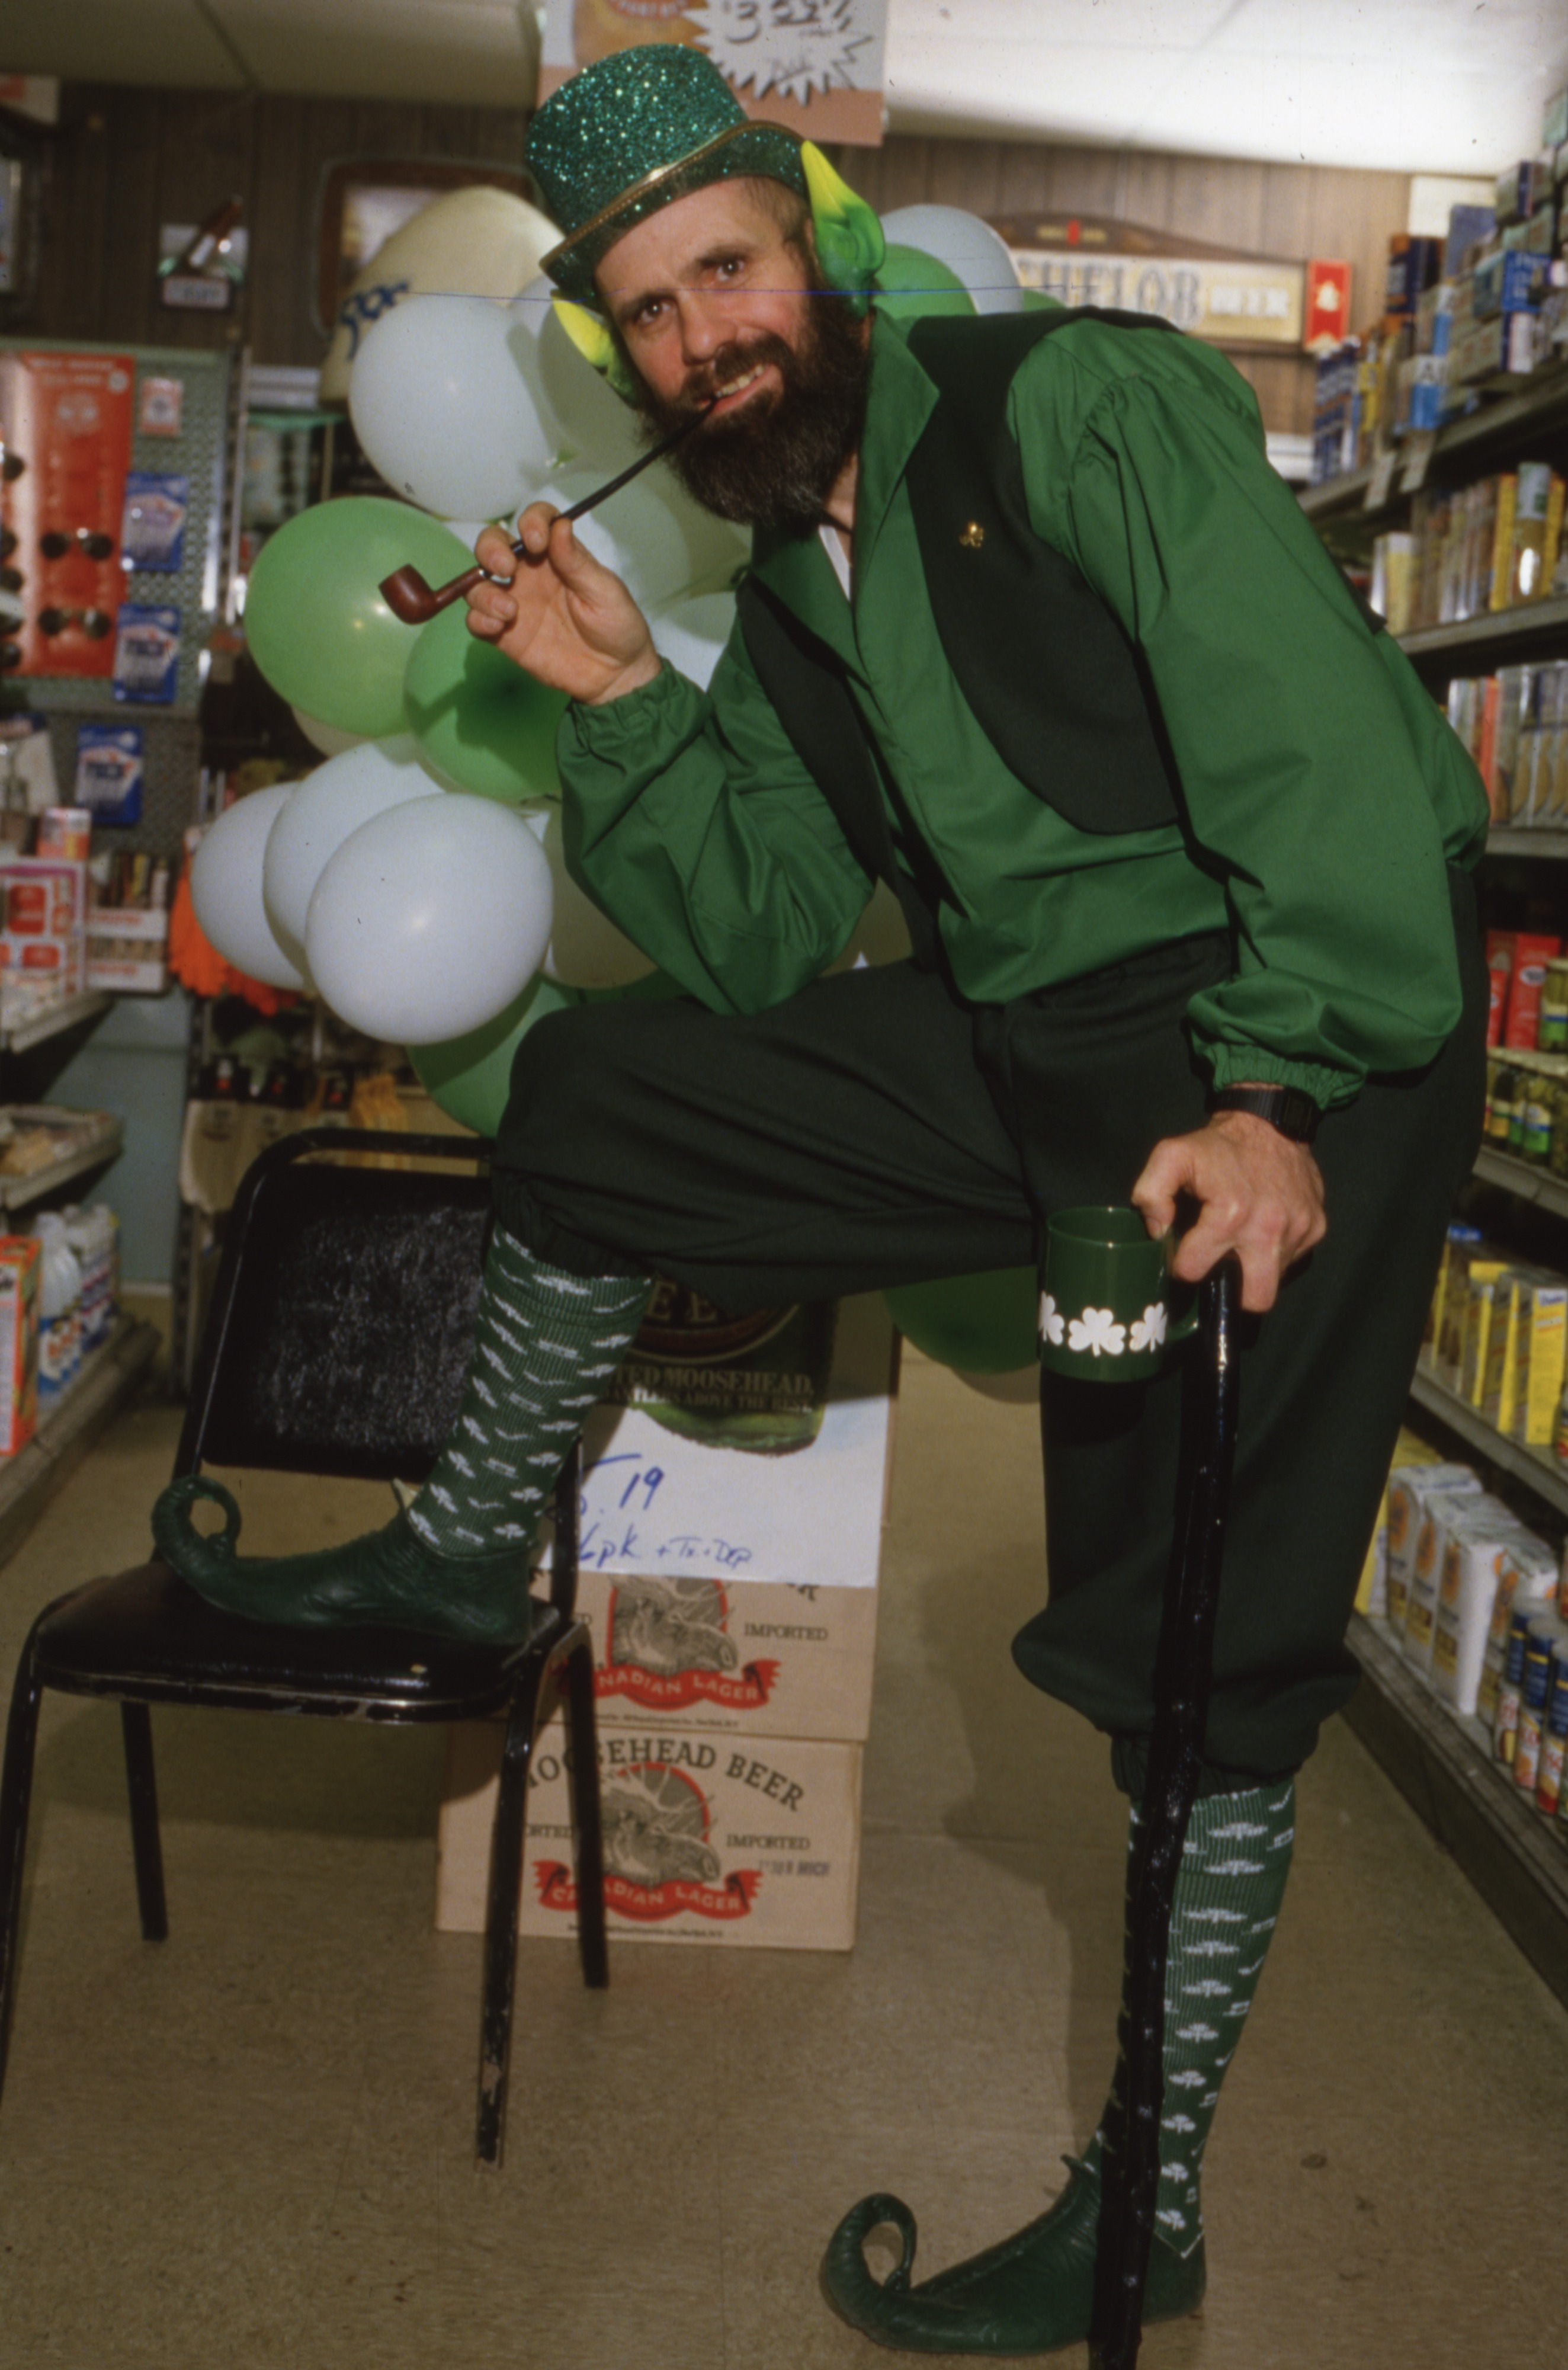 Patrick Gannon, Owner of Falsetta's Market, Dressed For St. Patrick's Day - March 1985 image